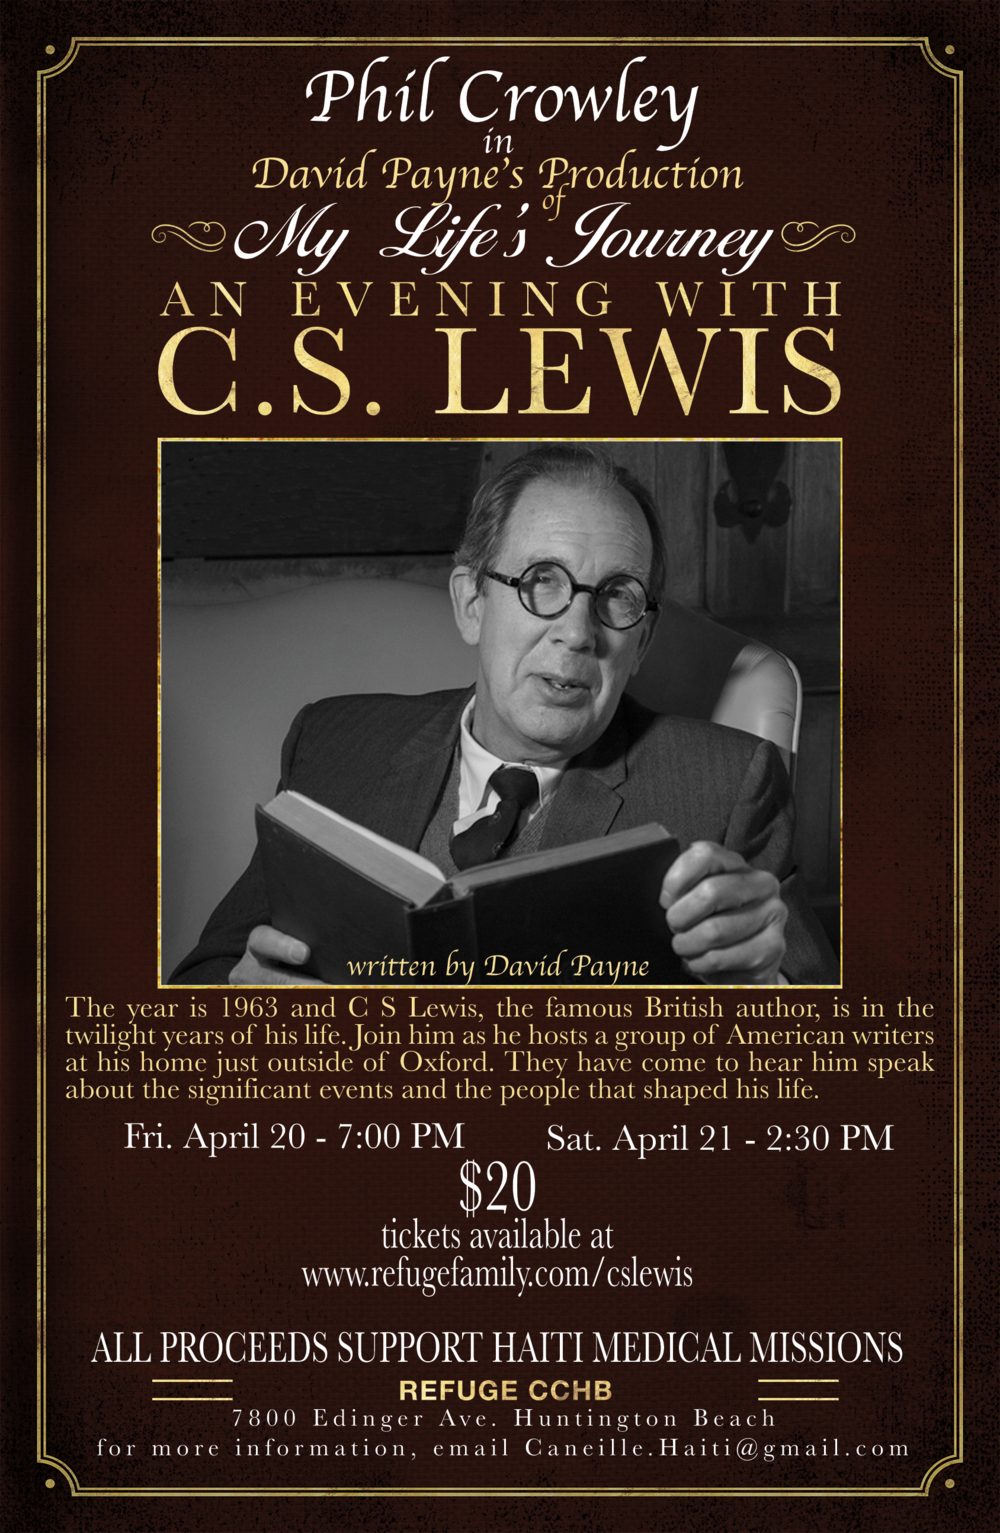 EveningWithCSLewis_PCrowley.png